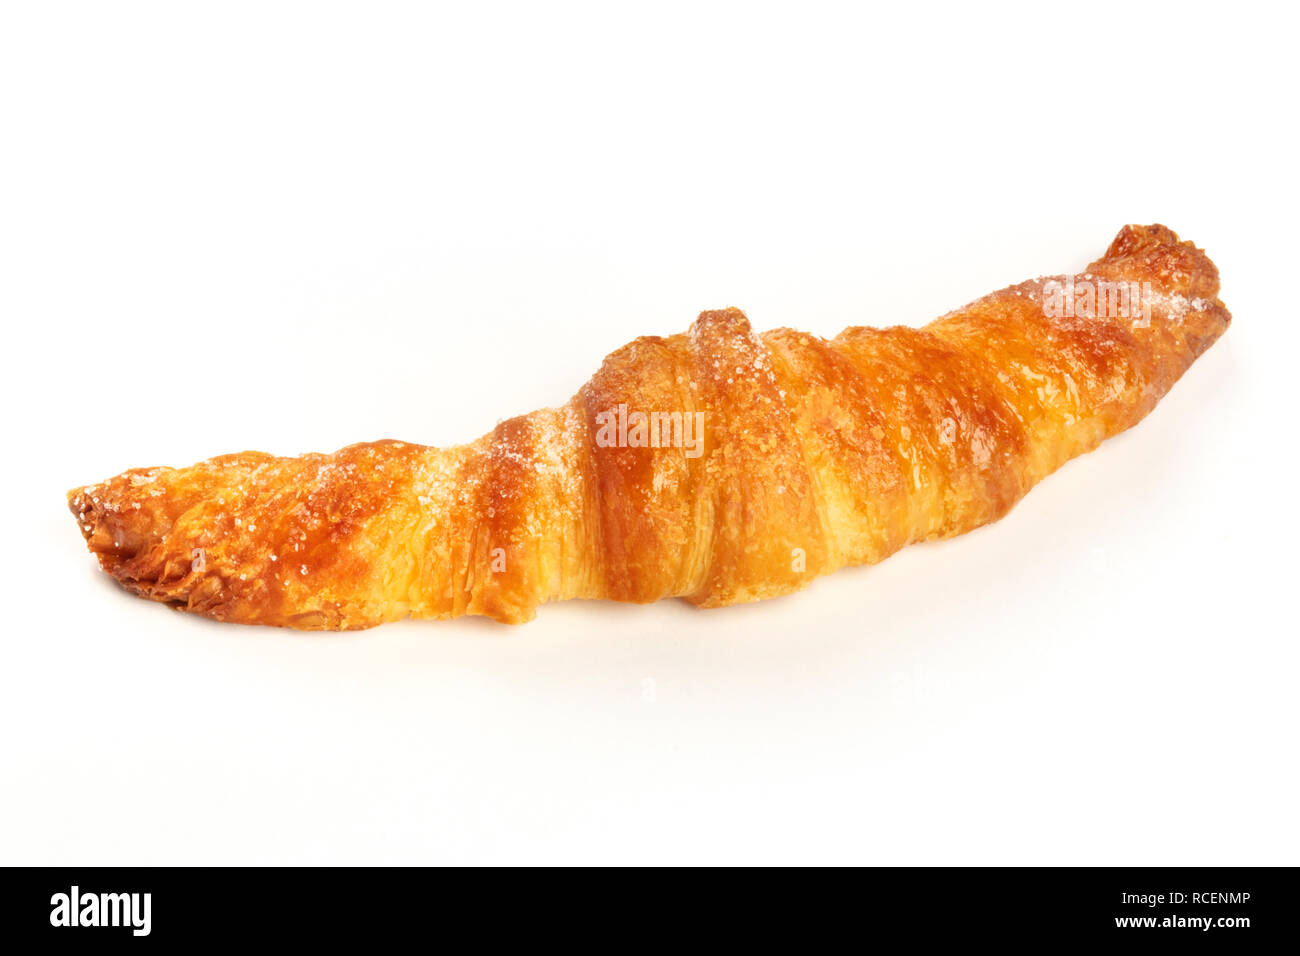 A photo of a croissant on a white background with a place for text - Stock Image